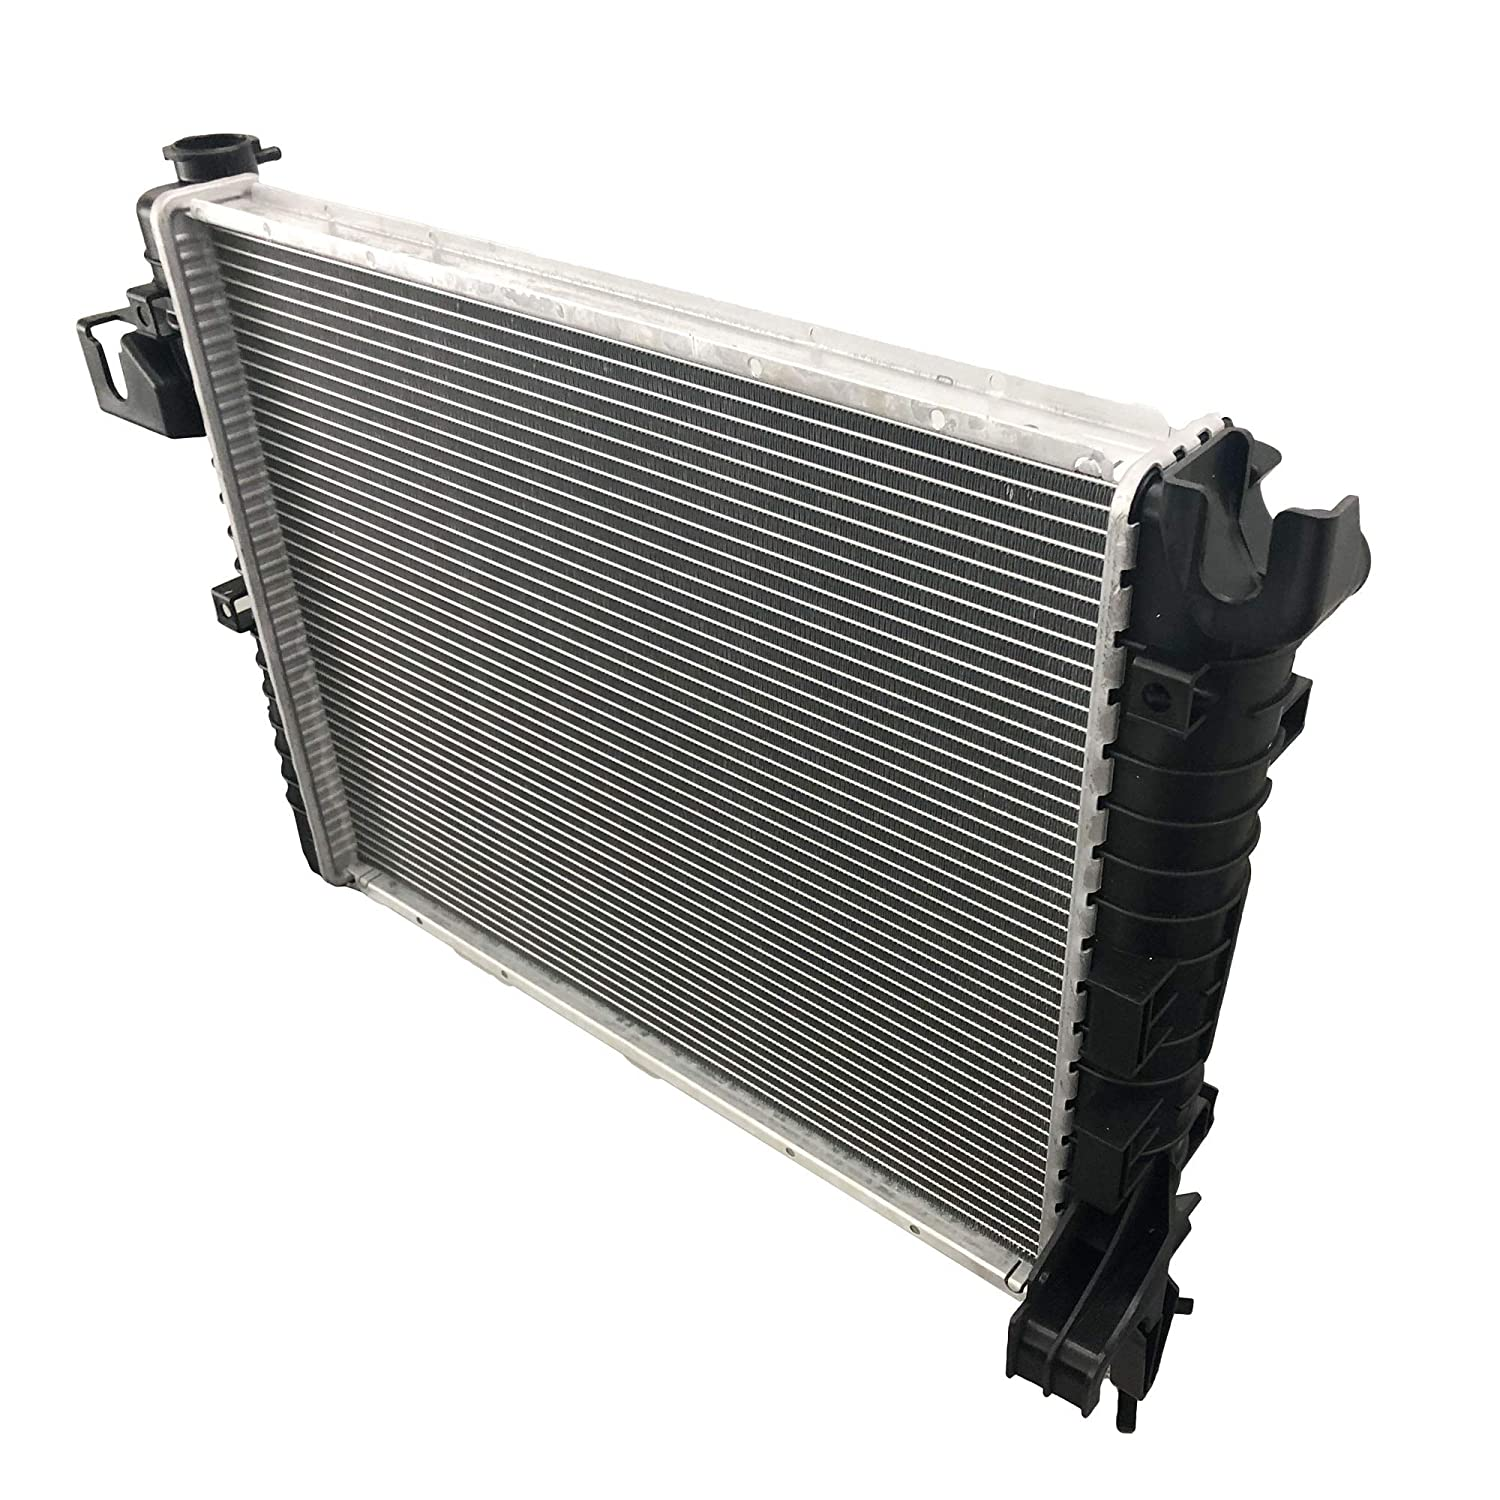 55056481AB MYSMOT CU2813 Radiator Direct Replacement Assembly For ...